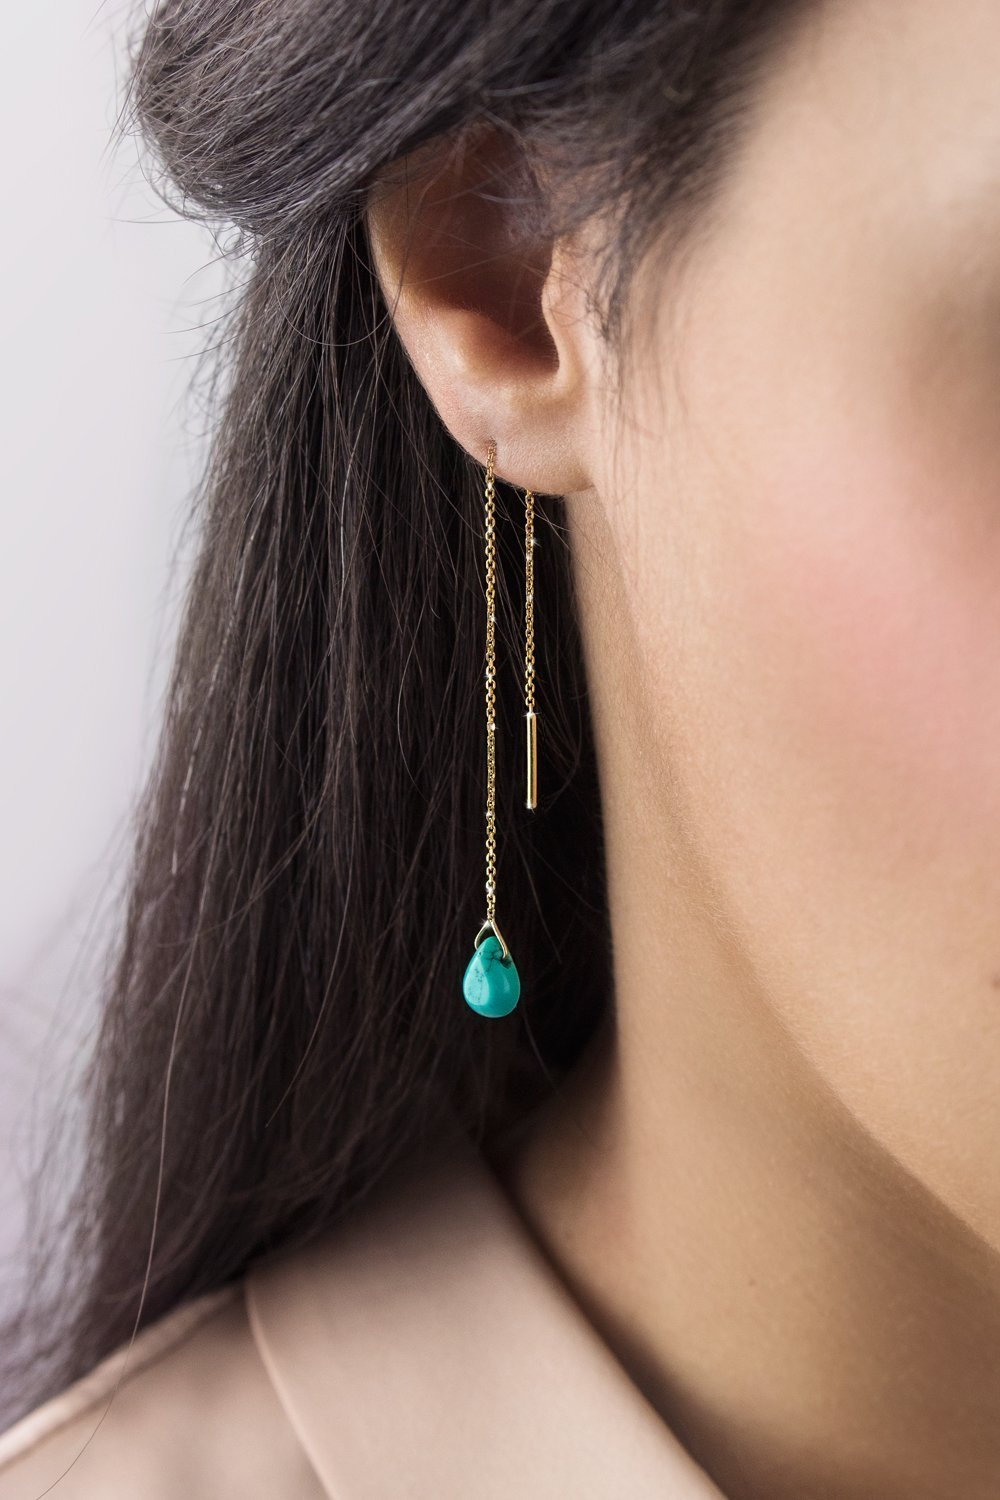 Turquoise Threader Earrings, 9K, 14K, 18K Gold Earrings, Yellow Gold Threaders, Gold Chain Earrings, December Birthstone, Gemstone Birthstone Earrings